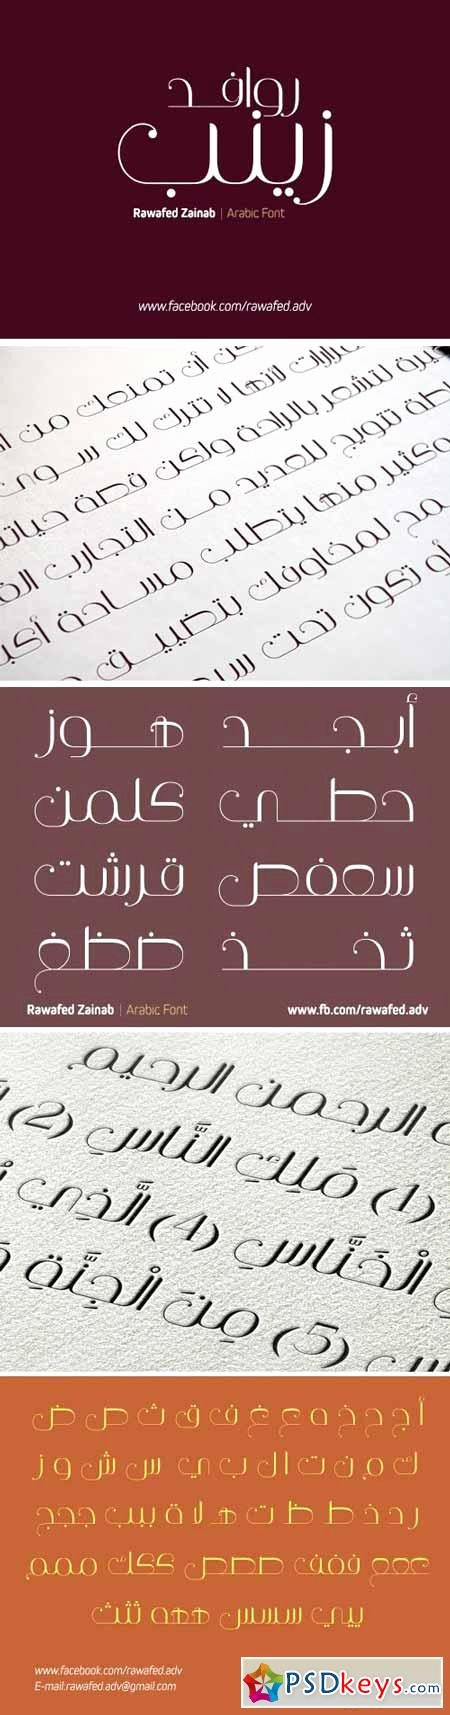 Arabic Fonts for Photoshop Inspirational Rawafed Zainab Arabic Font by Tareq Alizzy Free Download